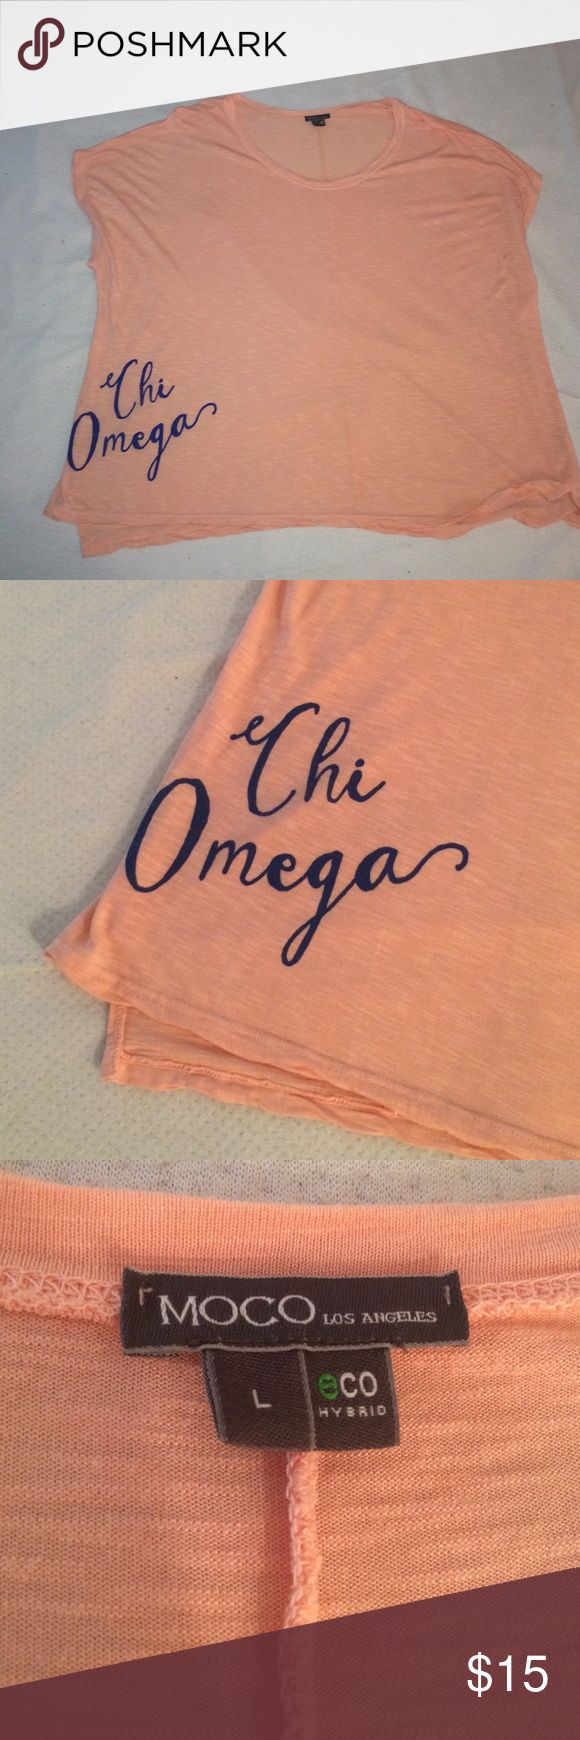 """Chi omega piko shirt Light pink piko with """"chi omega"""" written in blue writing on the bottom right side. Only worn once, in great condition! Feel free to make reasonable offers! Tops Tunics"""